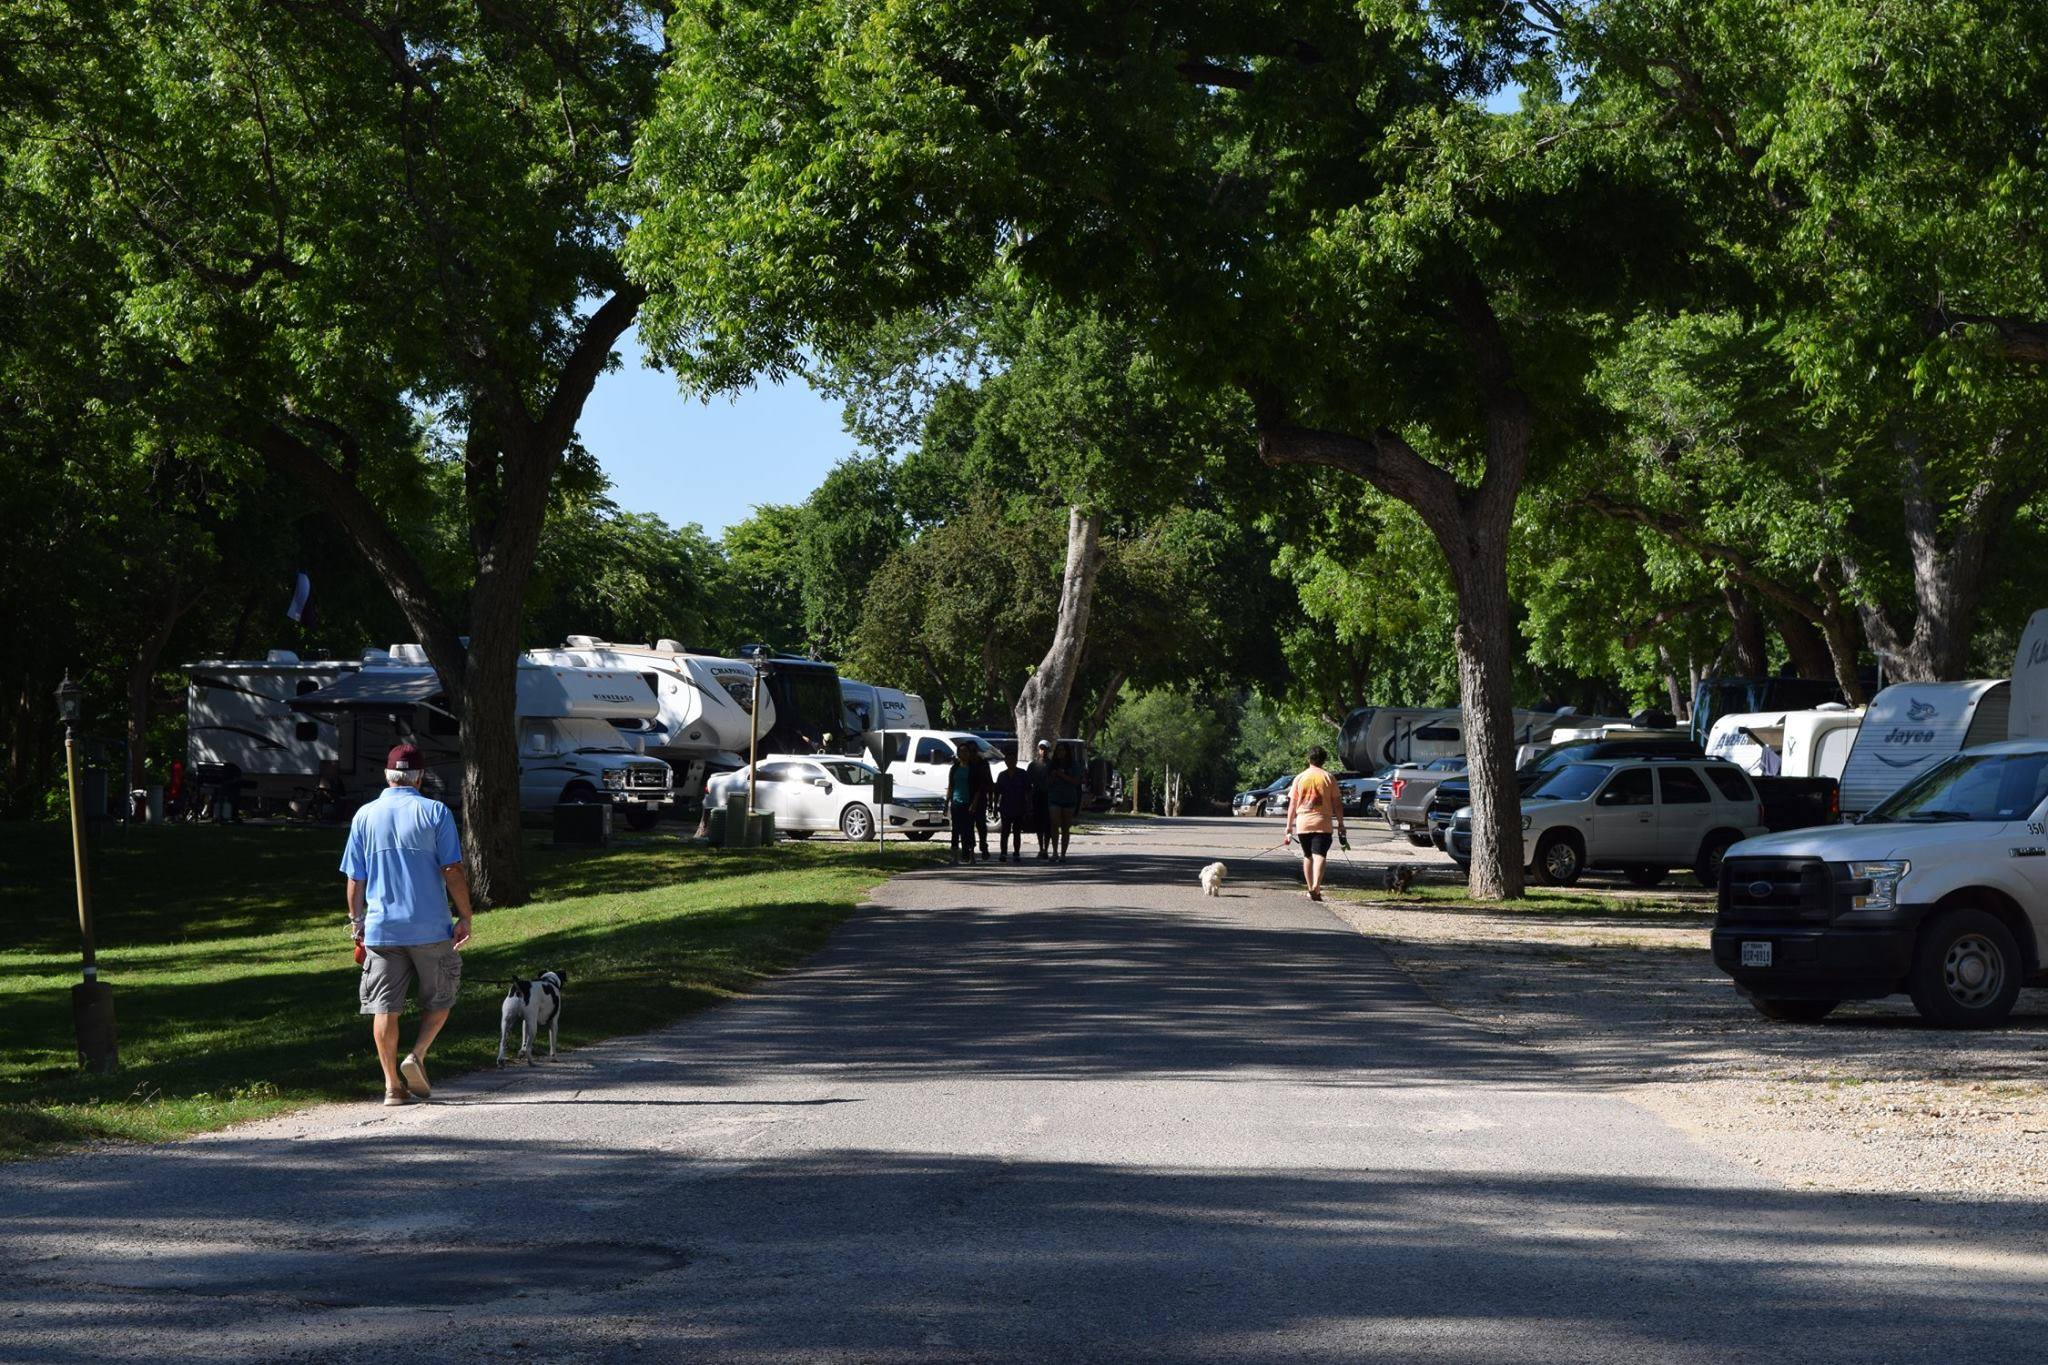 directions to pecan park riverside rv park in san marcos, texas